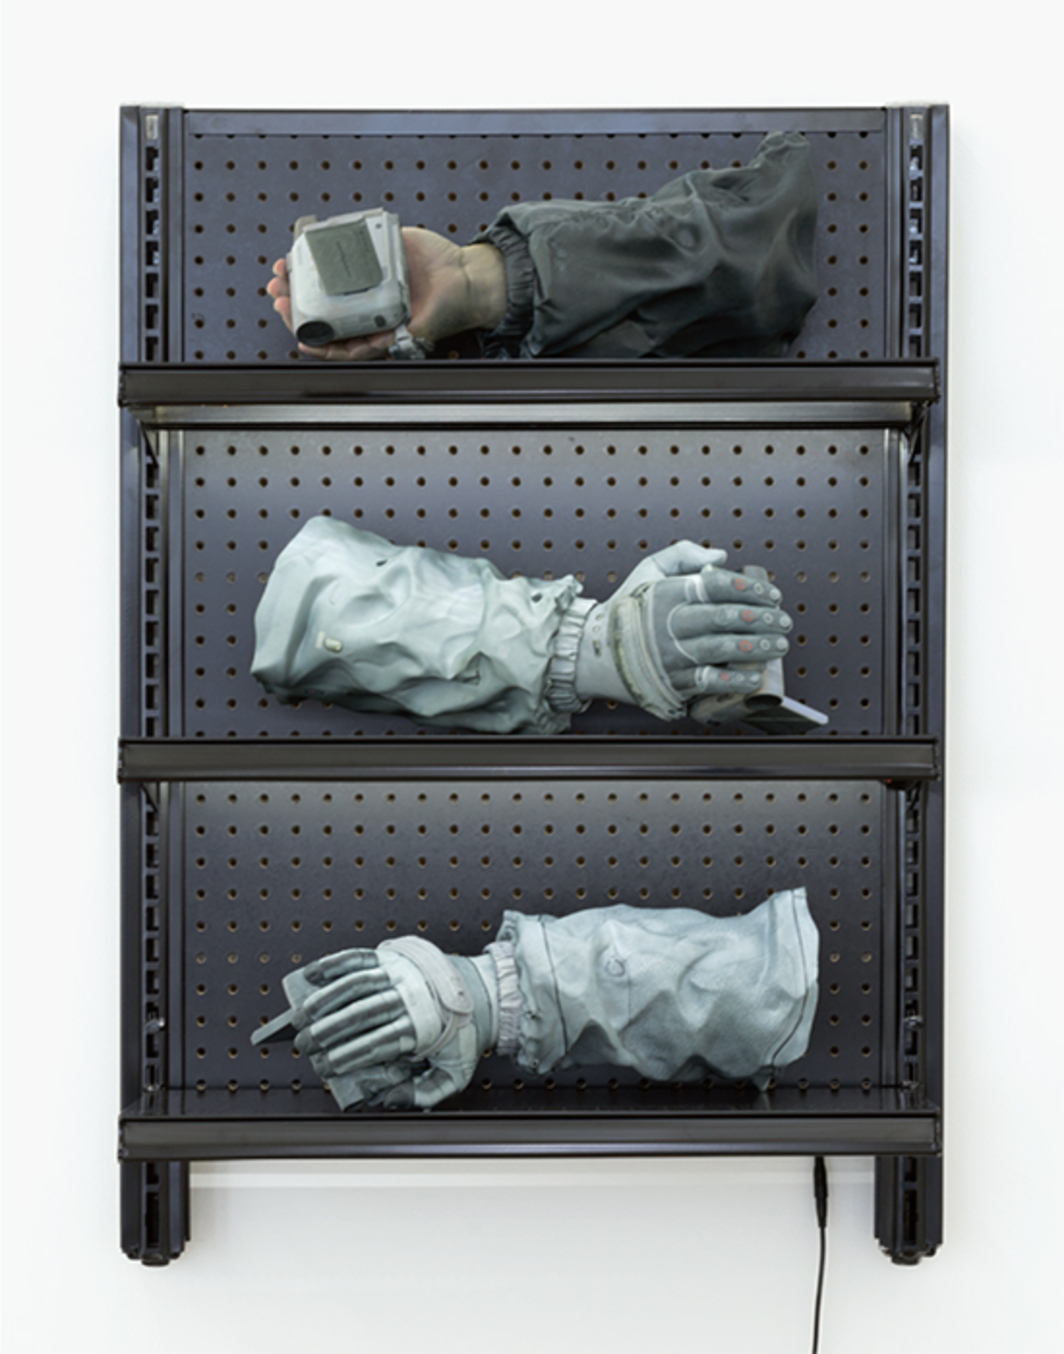 "Josh Kline, RAID Drives, 2015–16, plaster, ink-jet ink, cyanoacrylate, handcuffs, commercial shelving, LED lights, 37 × 27 1/2 × 15"". From ""The Politics of Portraiture."""